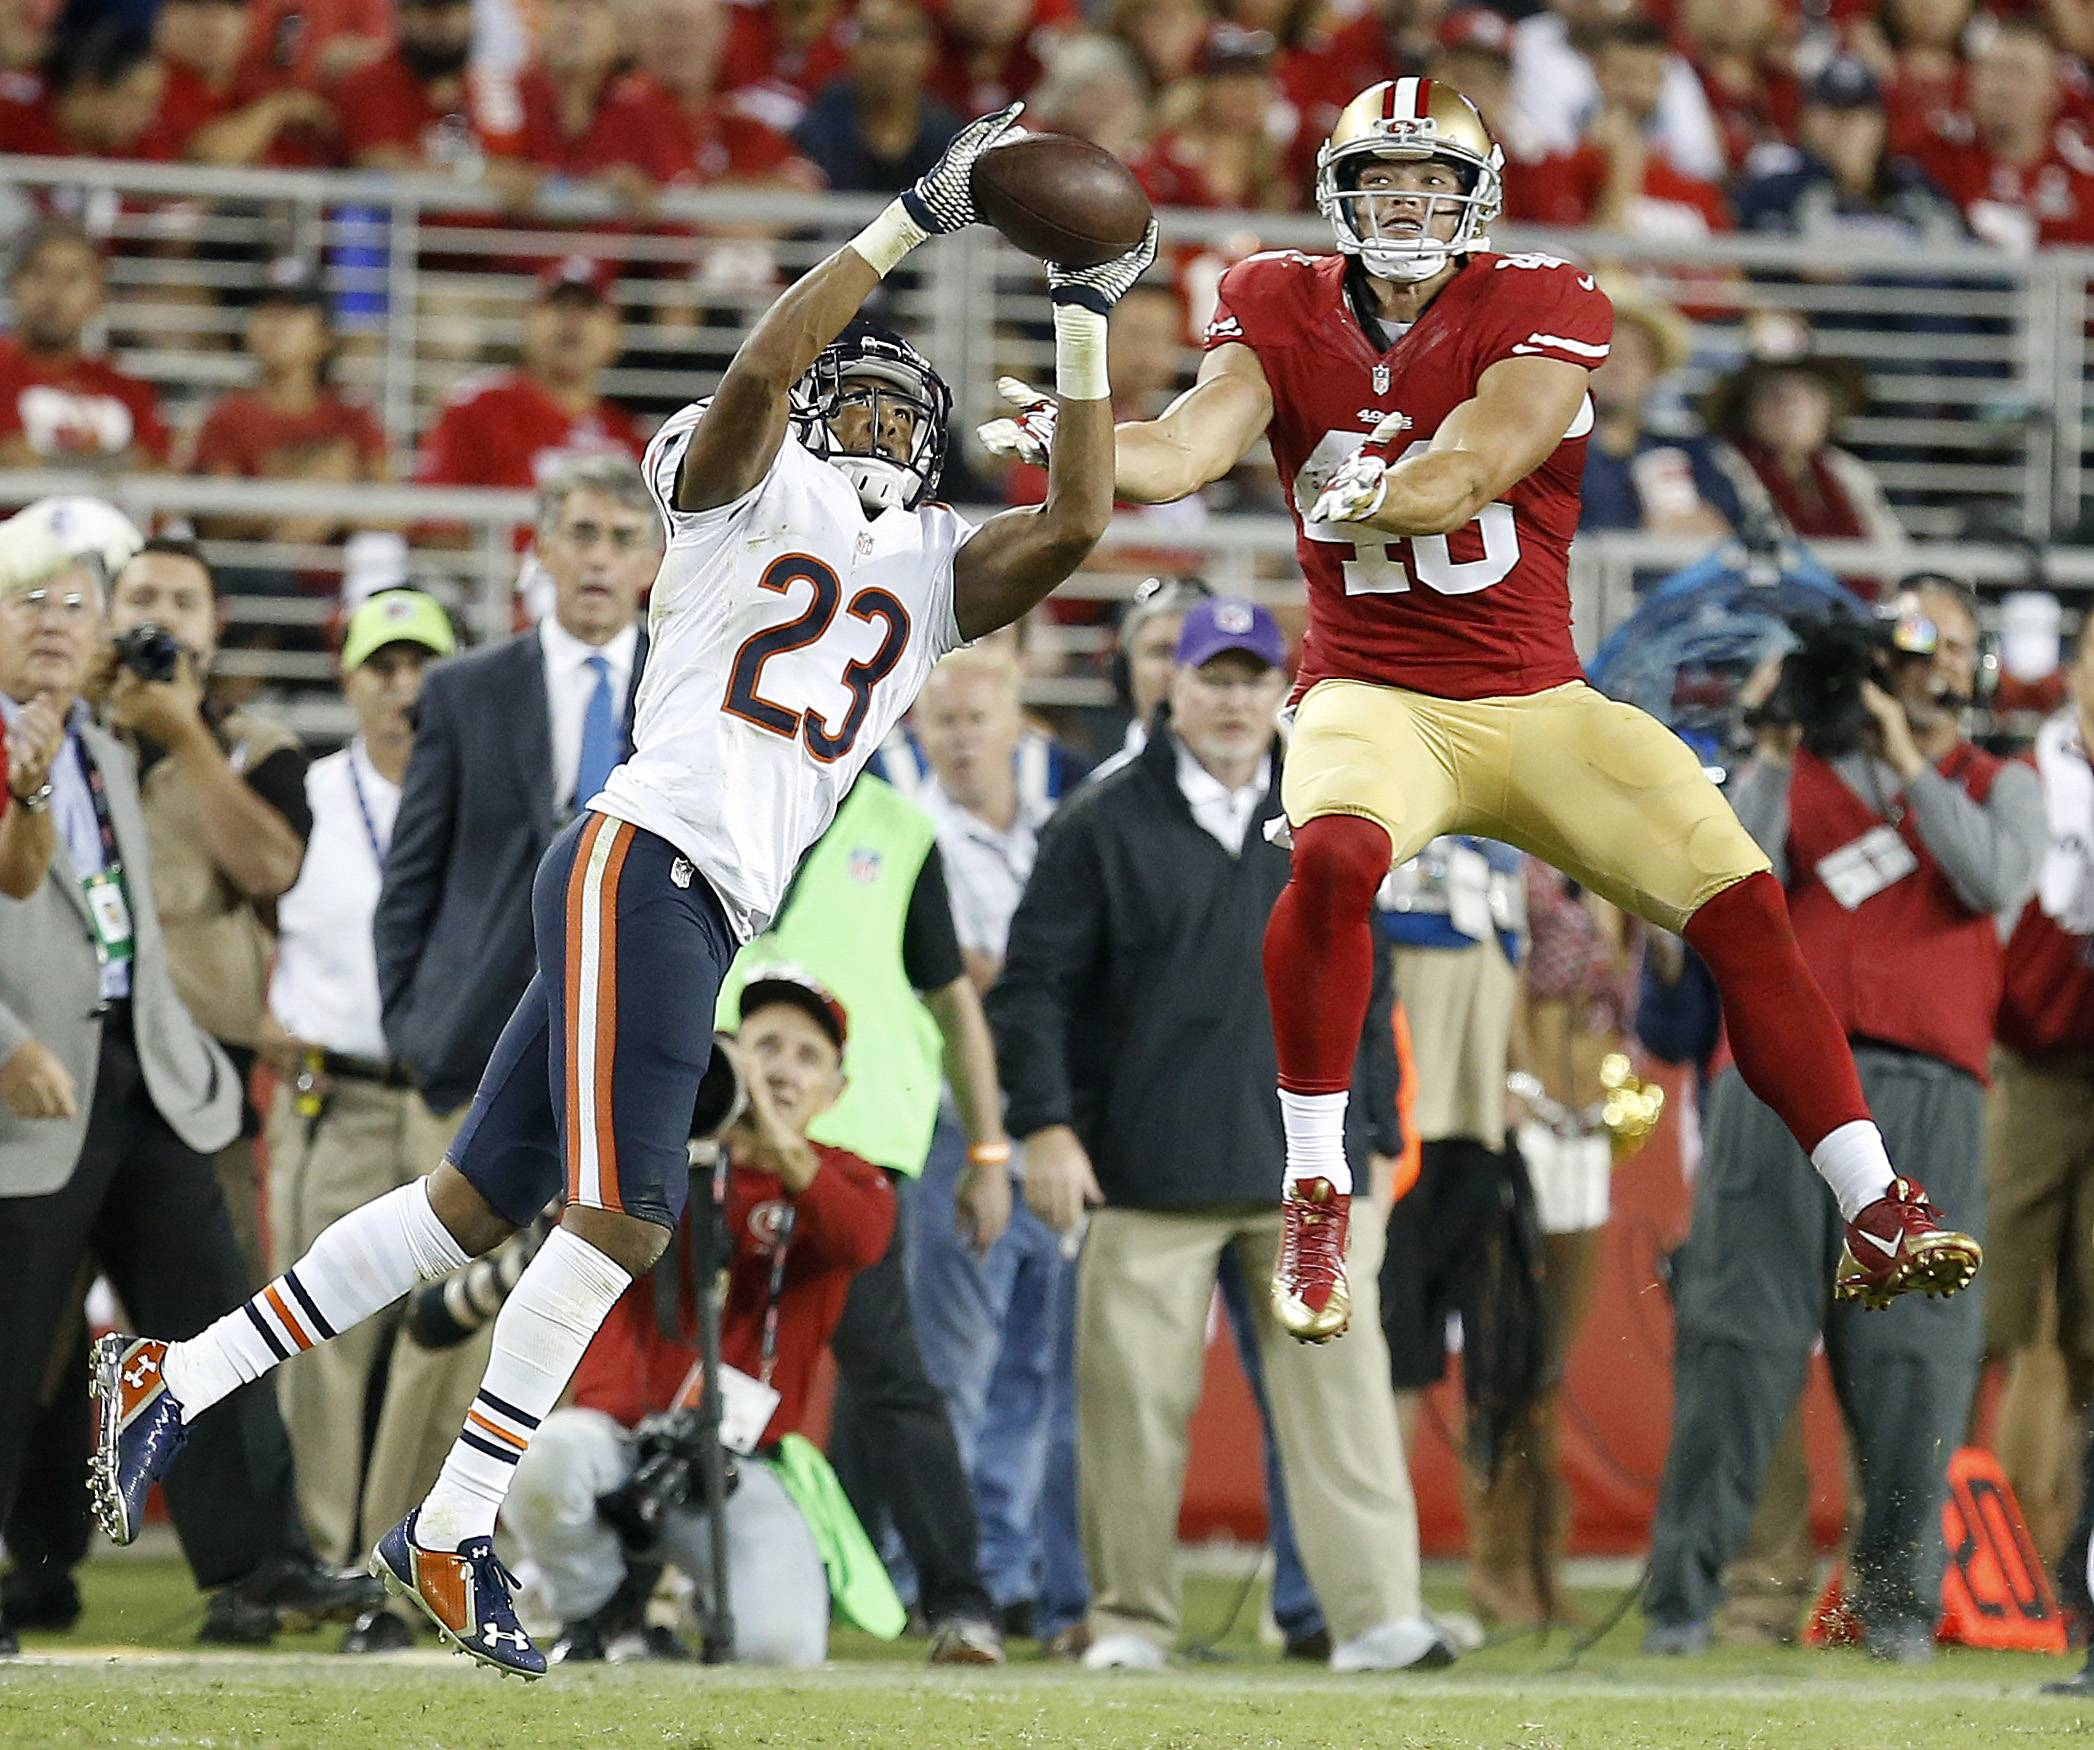 Chicago Bears cornerback Kyle Fuller (23) intercepts a pass intended for San Francisco 49ers tight end Derek Carrier during the fourth quarter of an NFL football game in Santa Clara, Calif., Sunday, Sept. 14, 2014.